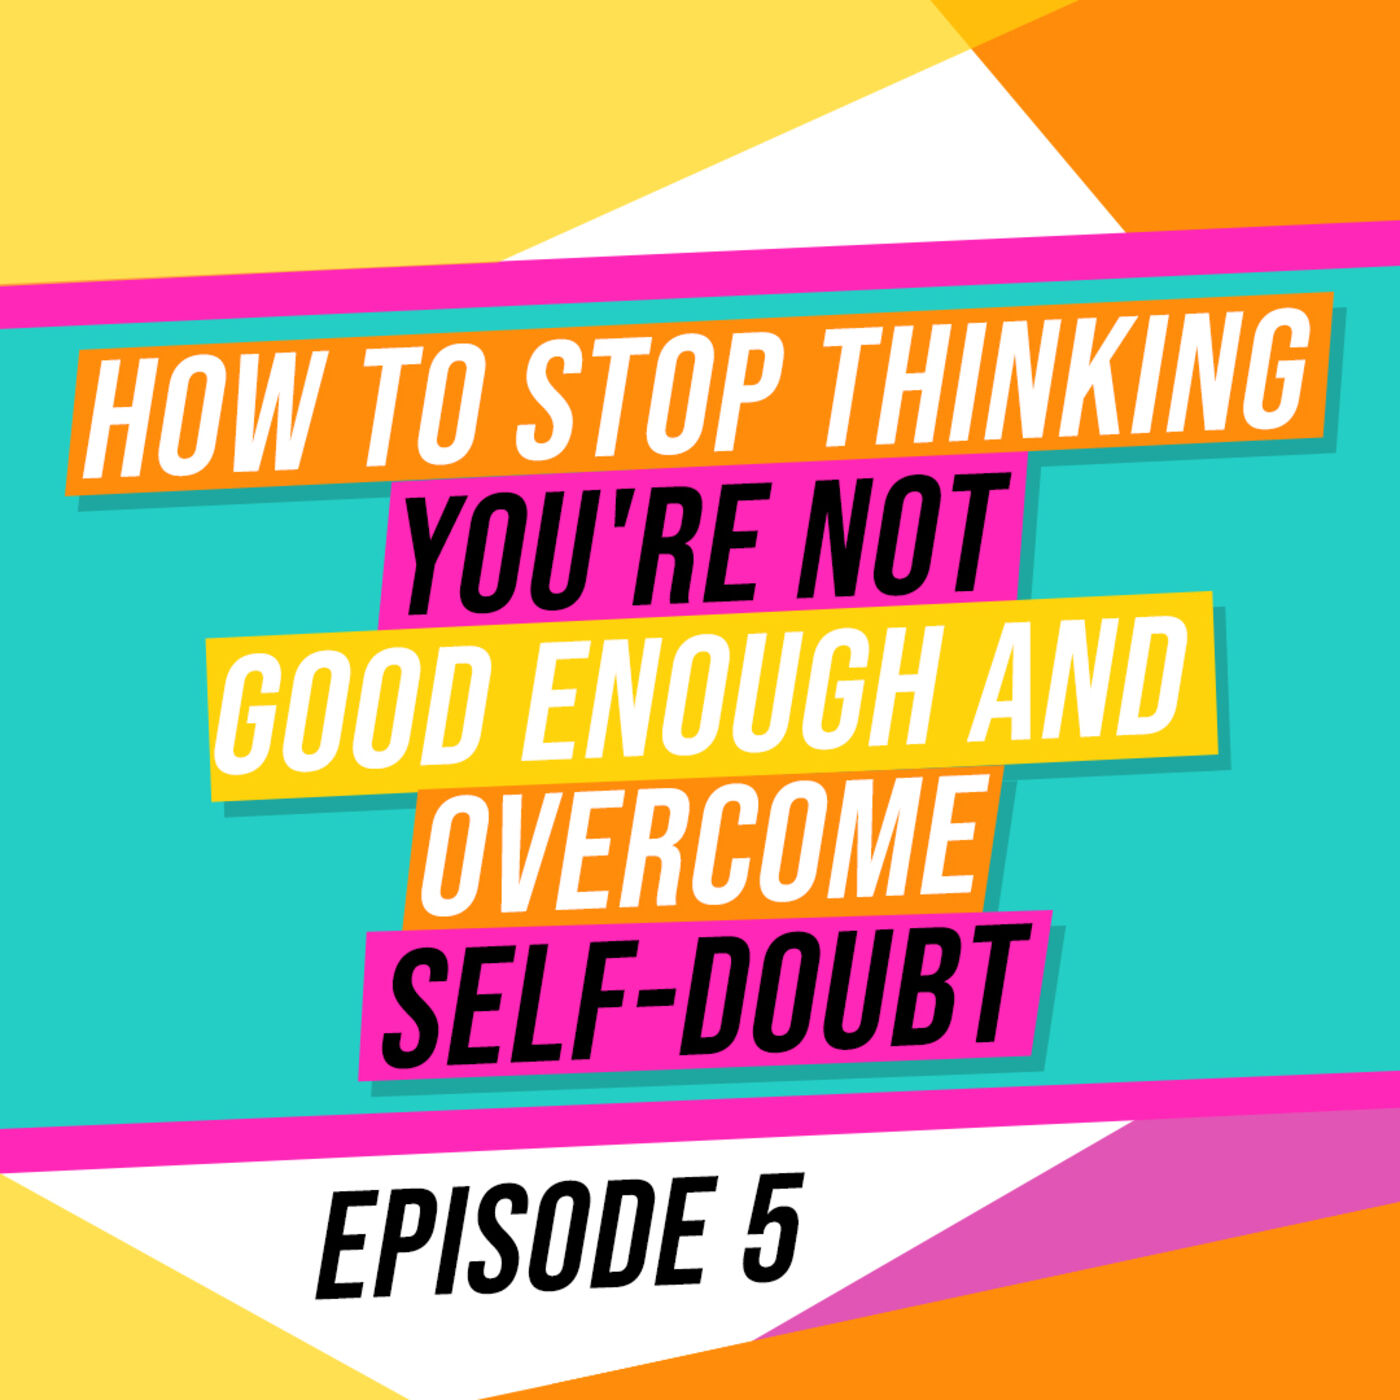 How to stop thinking you're not good enough and overcome self-doubt?